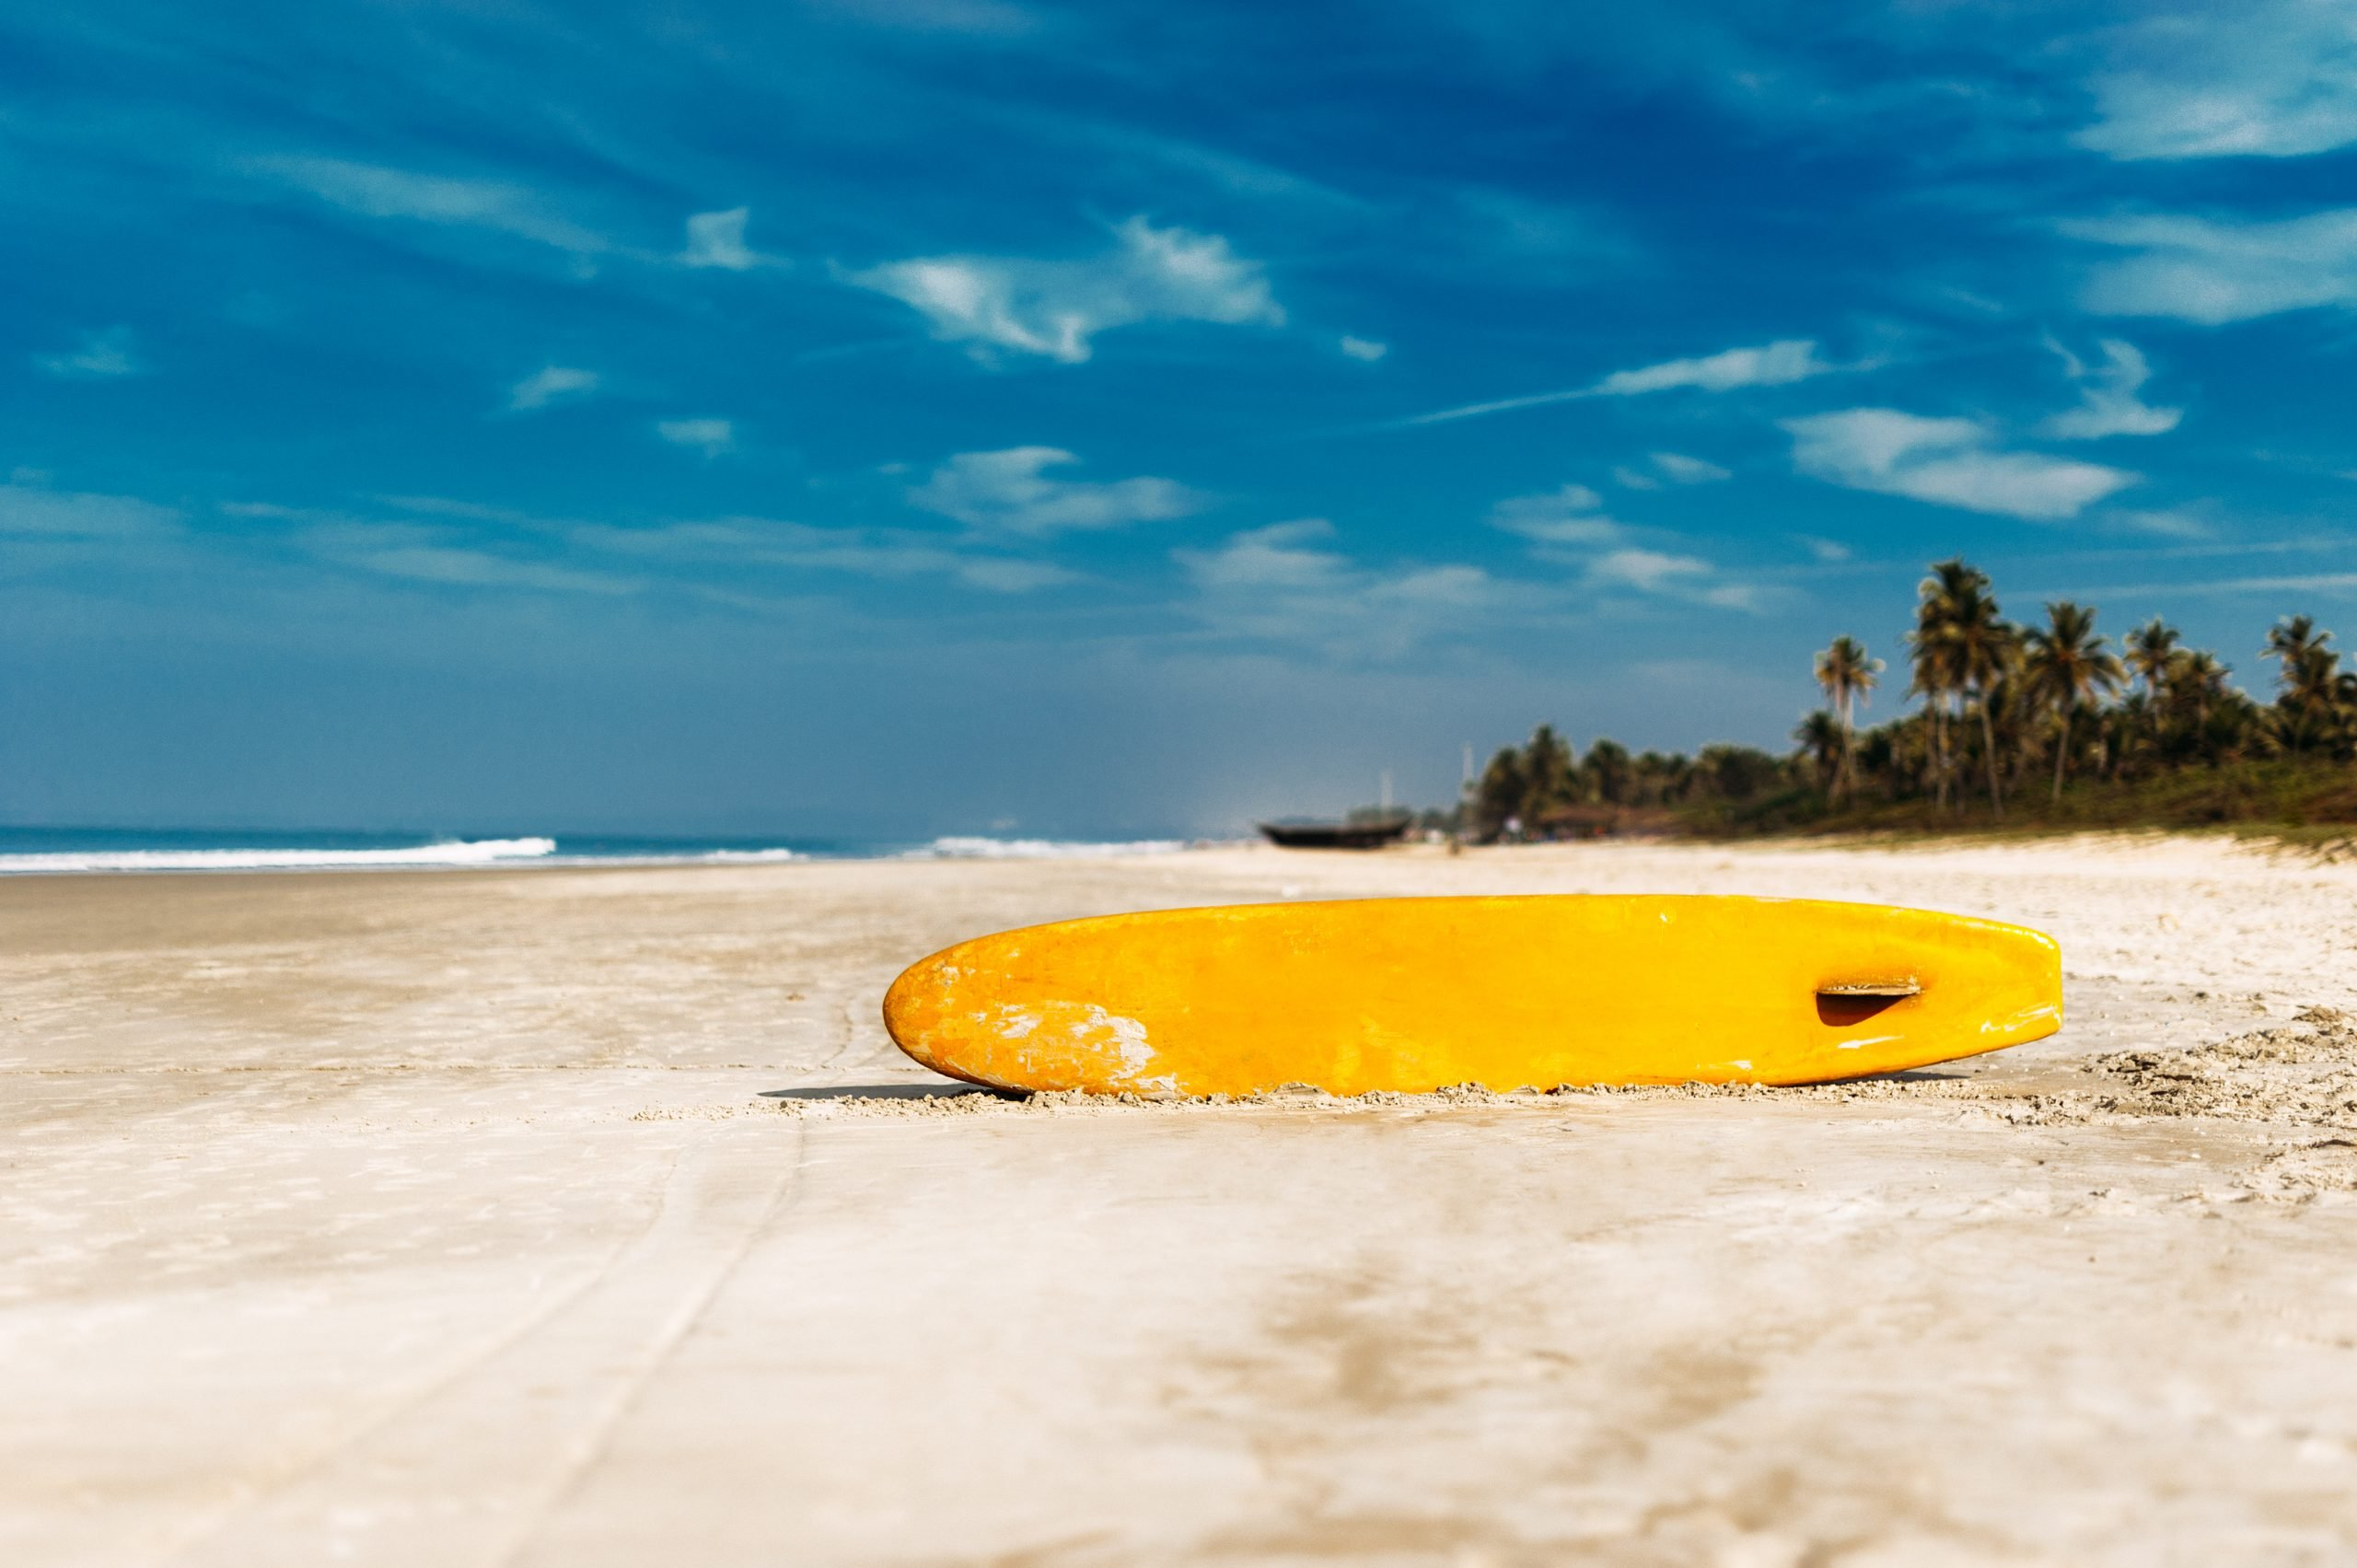 Surfboard on a tropical beach overlooking the ocean, blue sky background. Arugam Bay Sri Lanka, a top thing to do in Sri Lanka